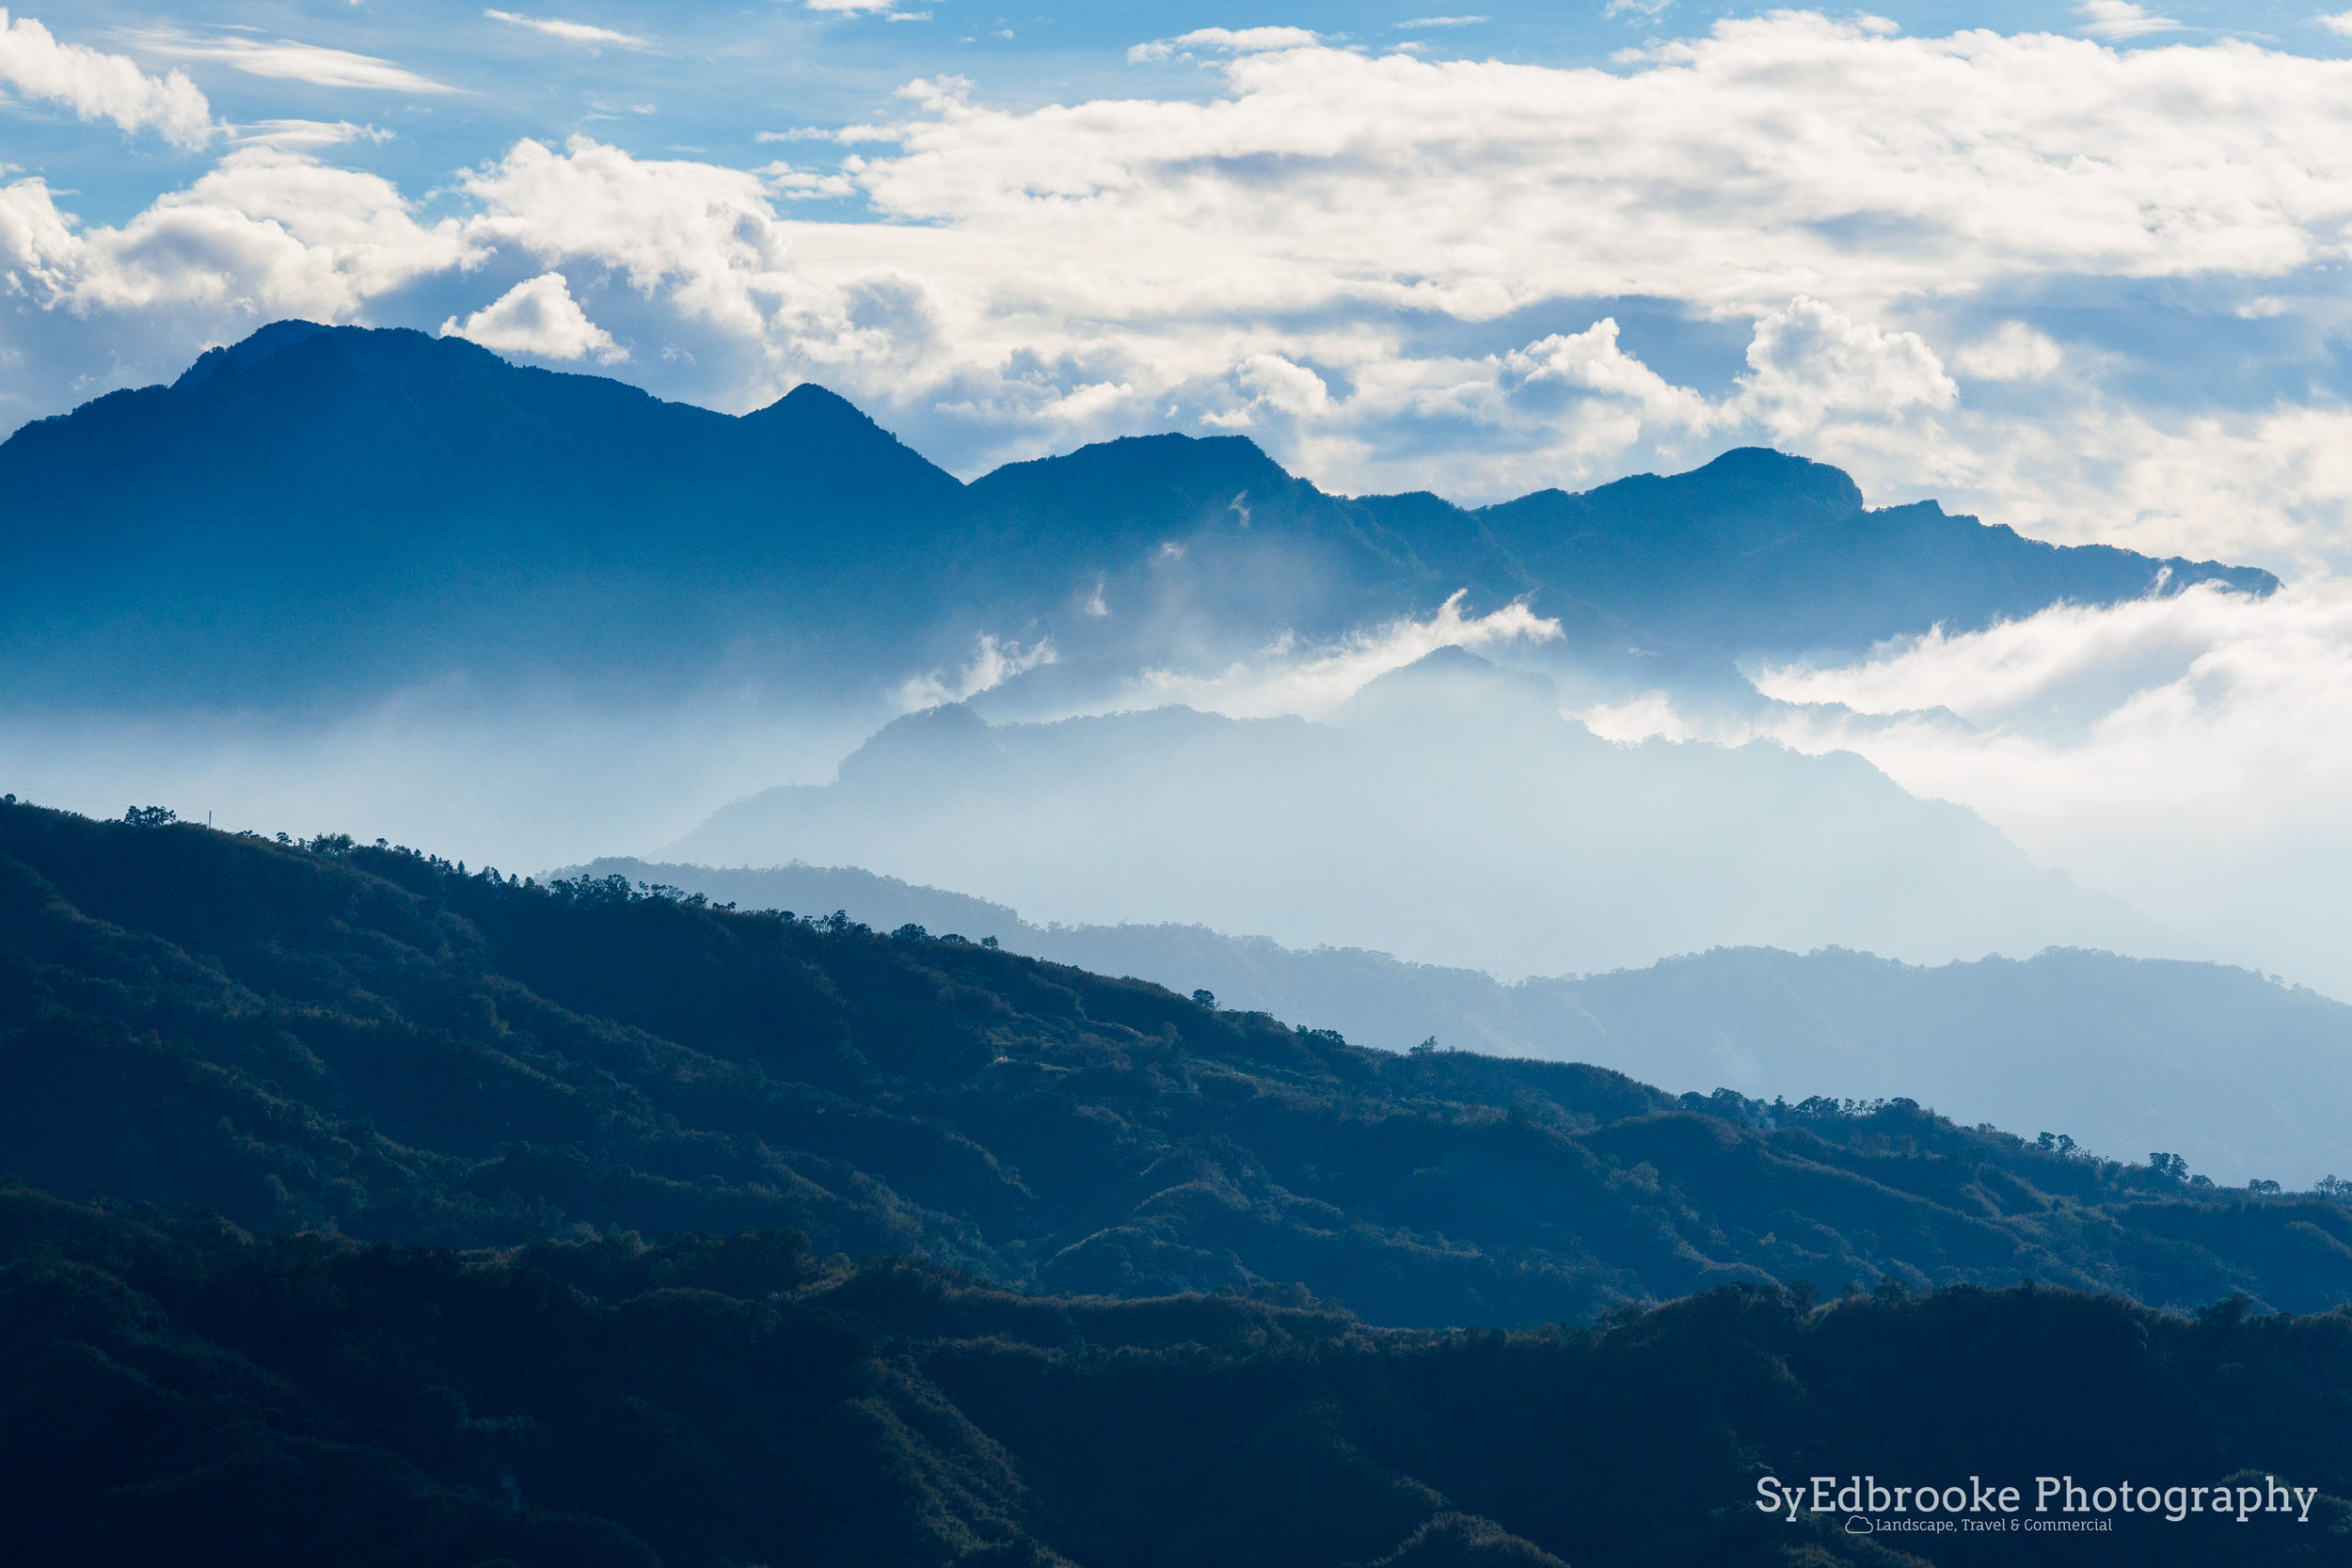 I shot this with my 75mm prime lens, The cloud and mist caught my eye. f4.5, ISO 200, 1/1600, 75mm